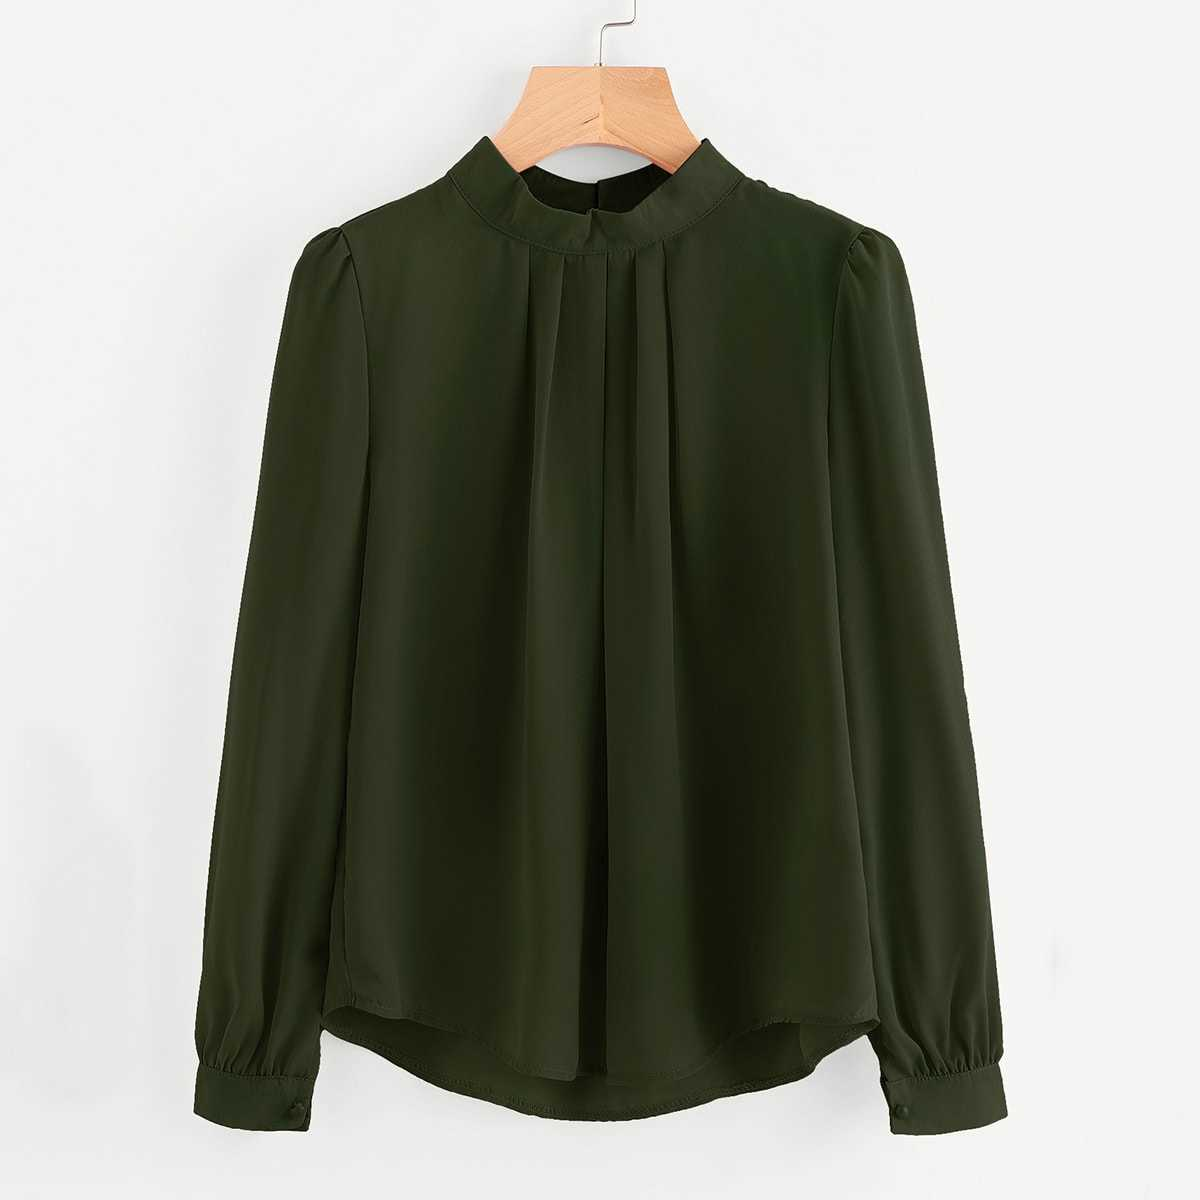 Mock Neck Pleated Detail Chiffon Blouse in Army Green by ROMWE on GOOFASH